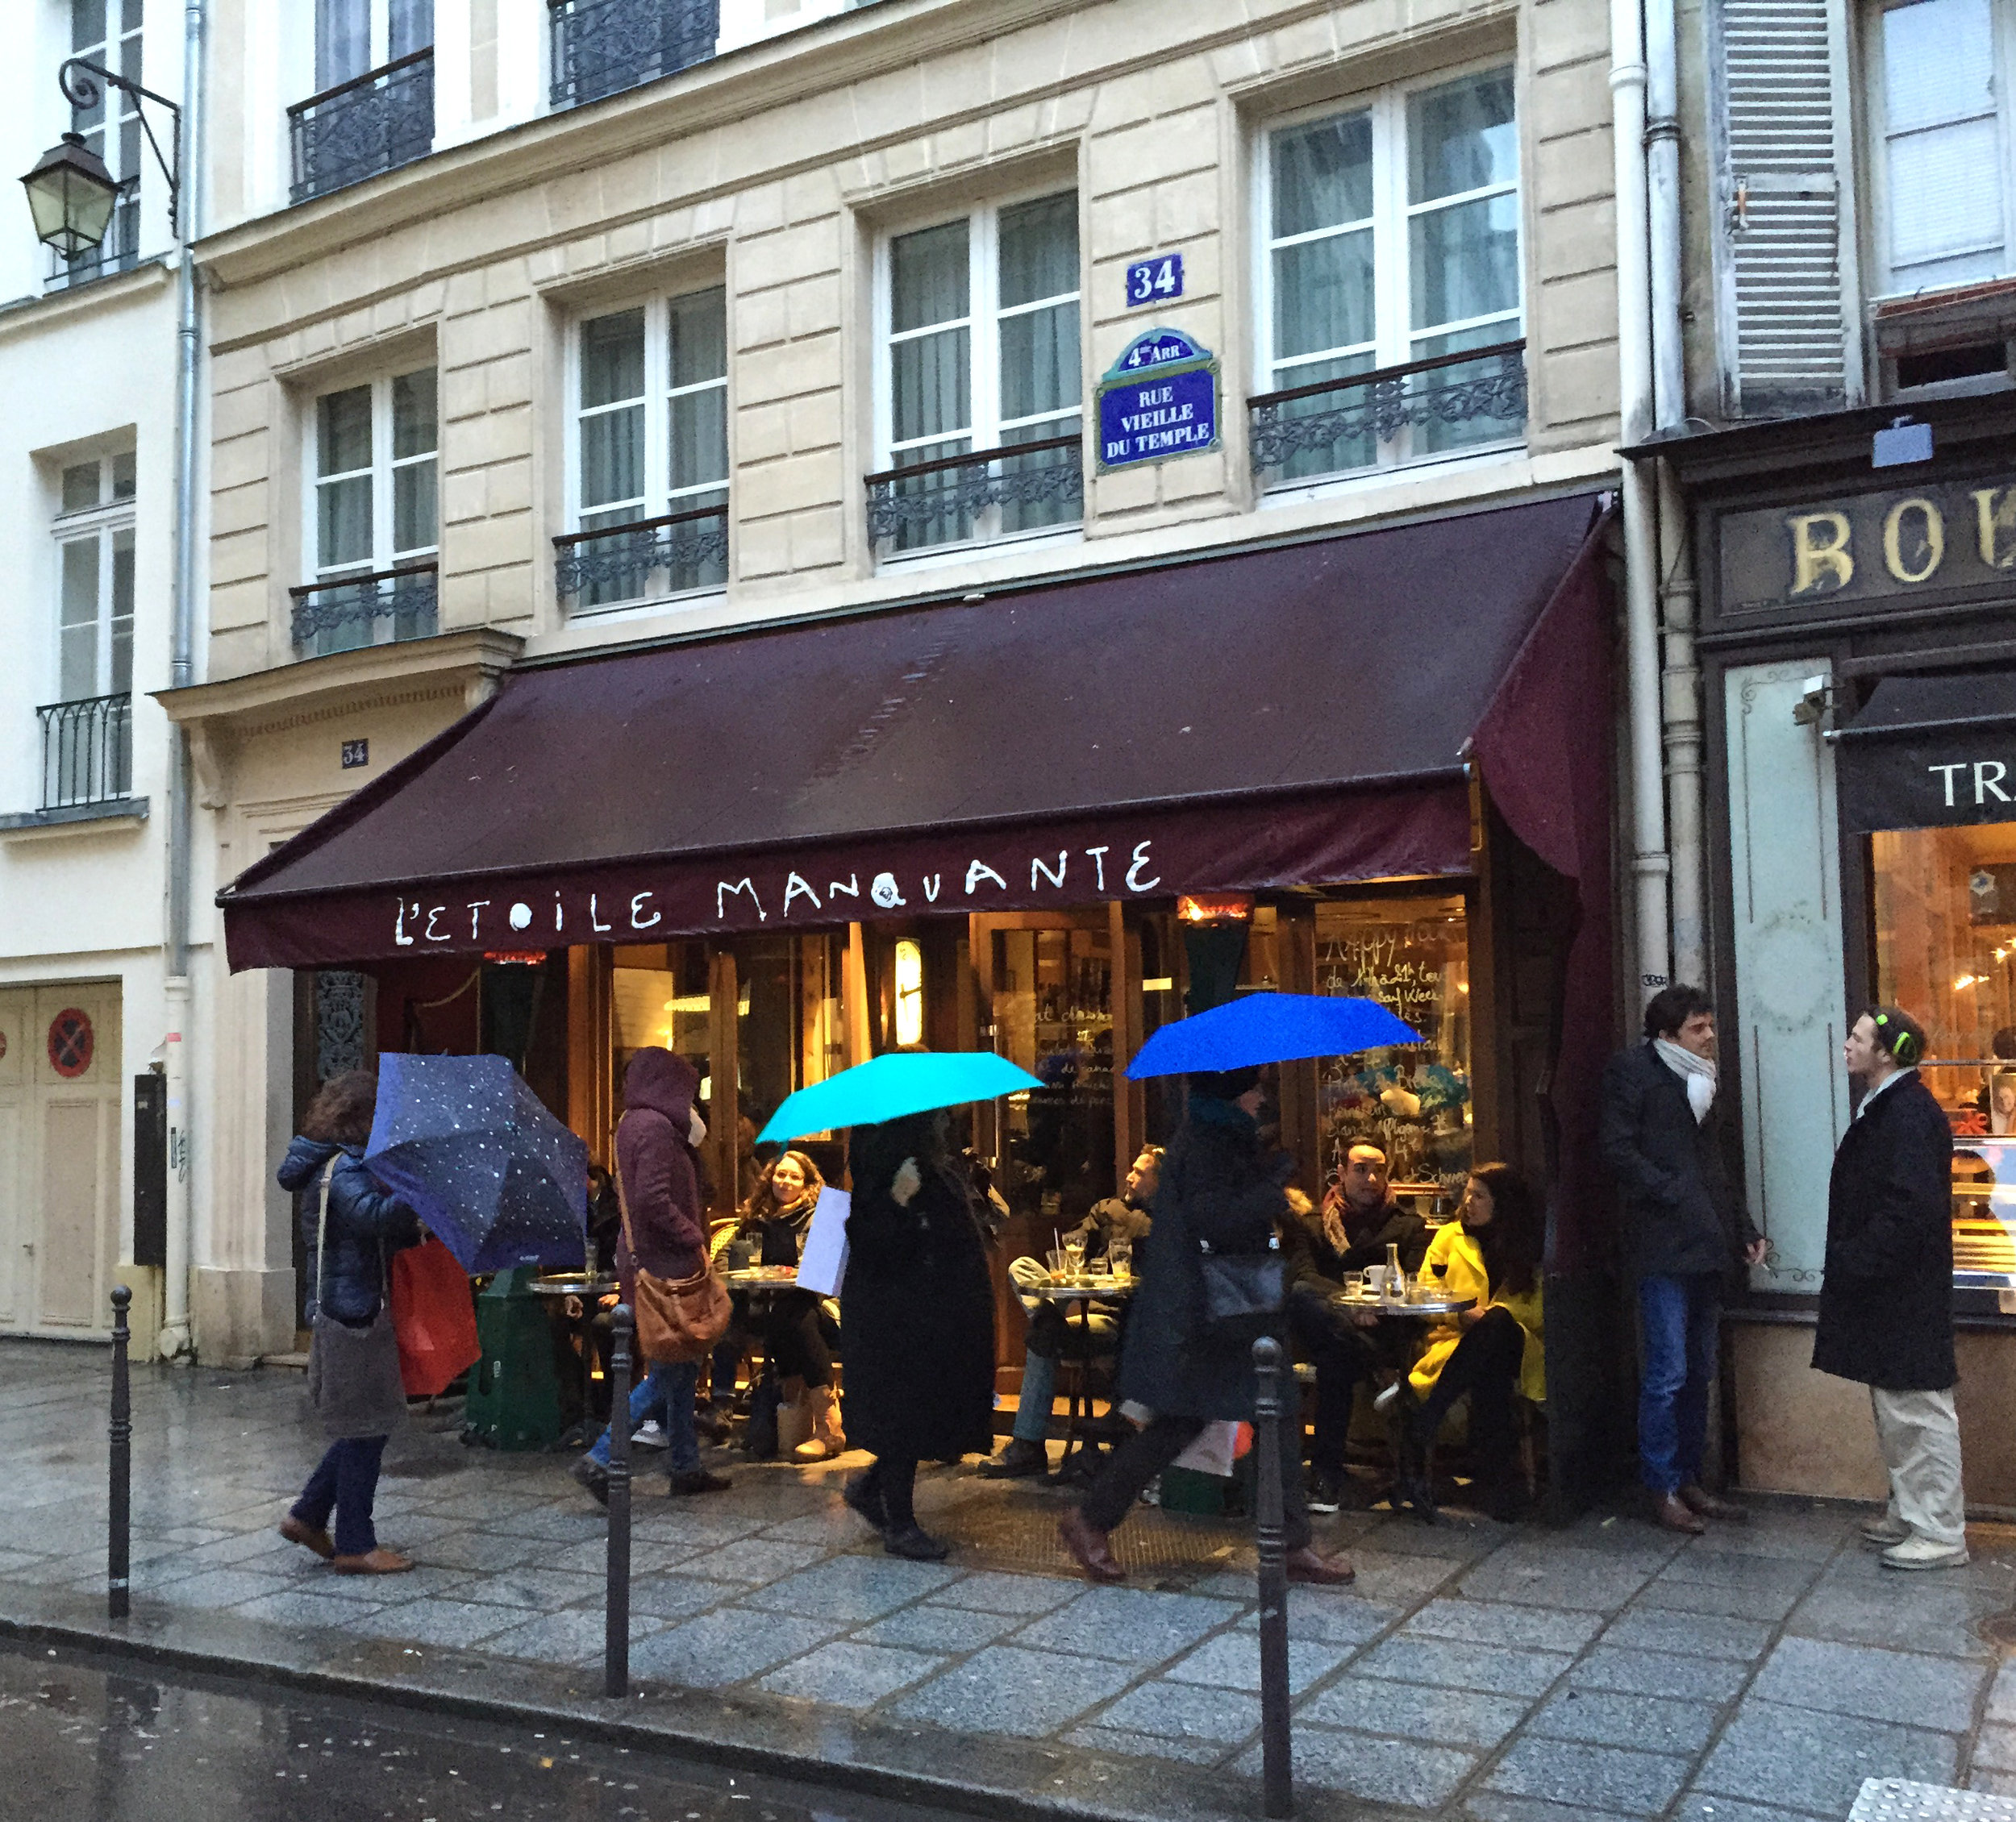 Rue Vieille-du-Temple in the 3rd arrondissement. Love the colorful umbrellas!